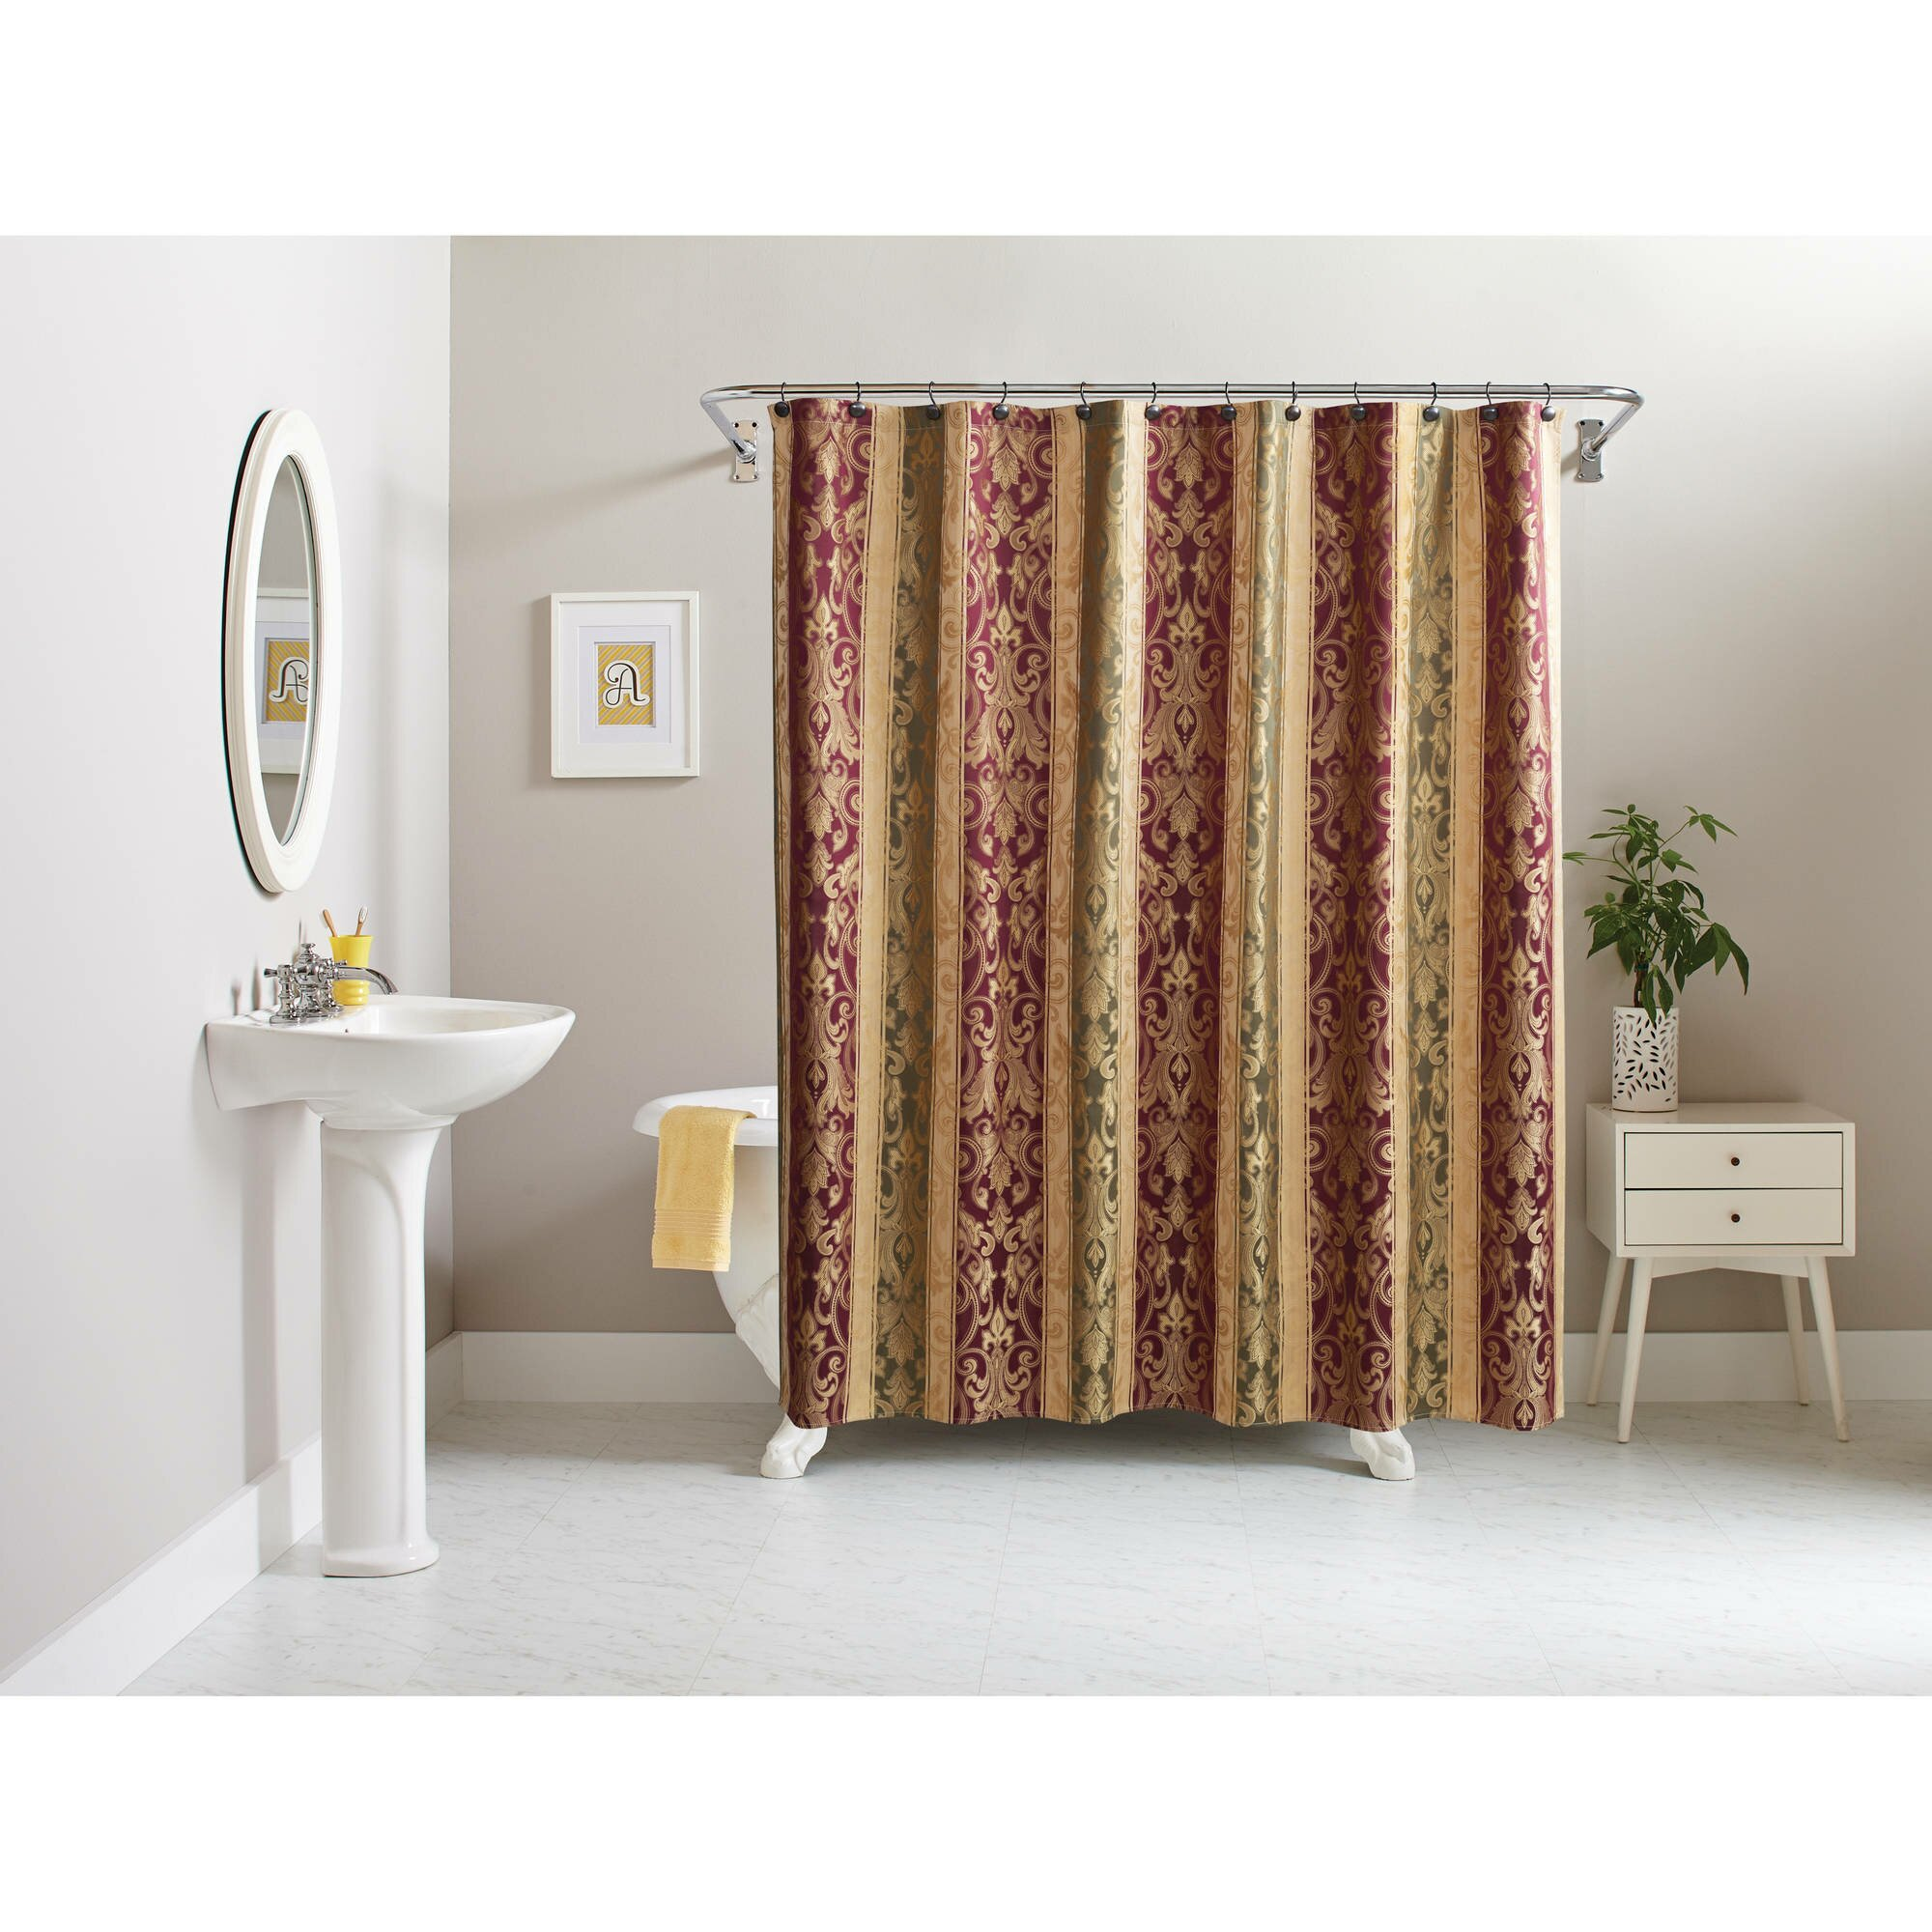 Bathroom Curtains Walmart | Walmart Shower Curtain | Matching Shower and Window Curtain Sets